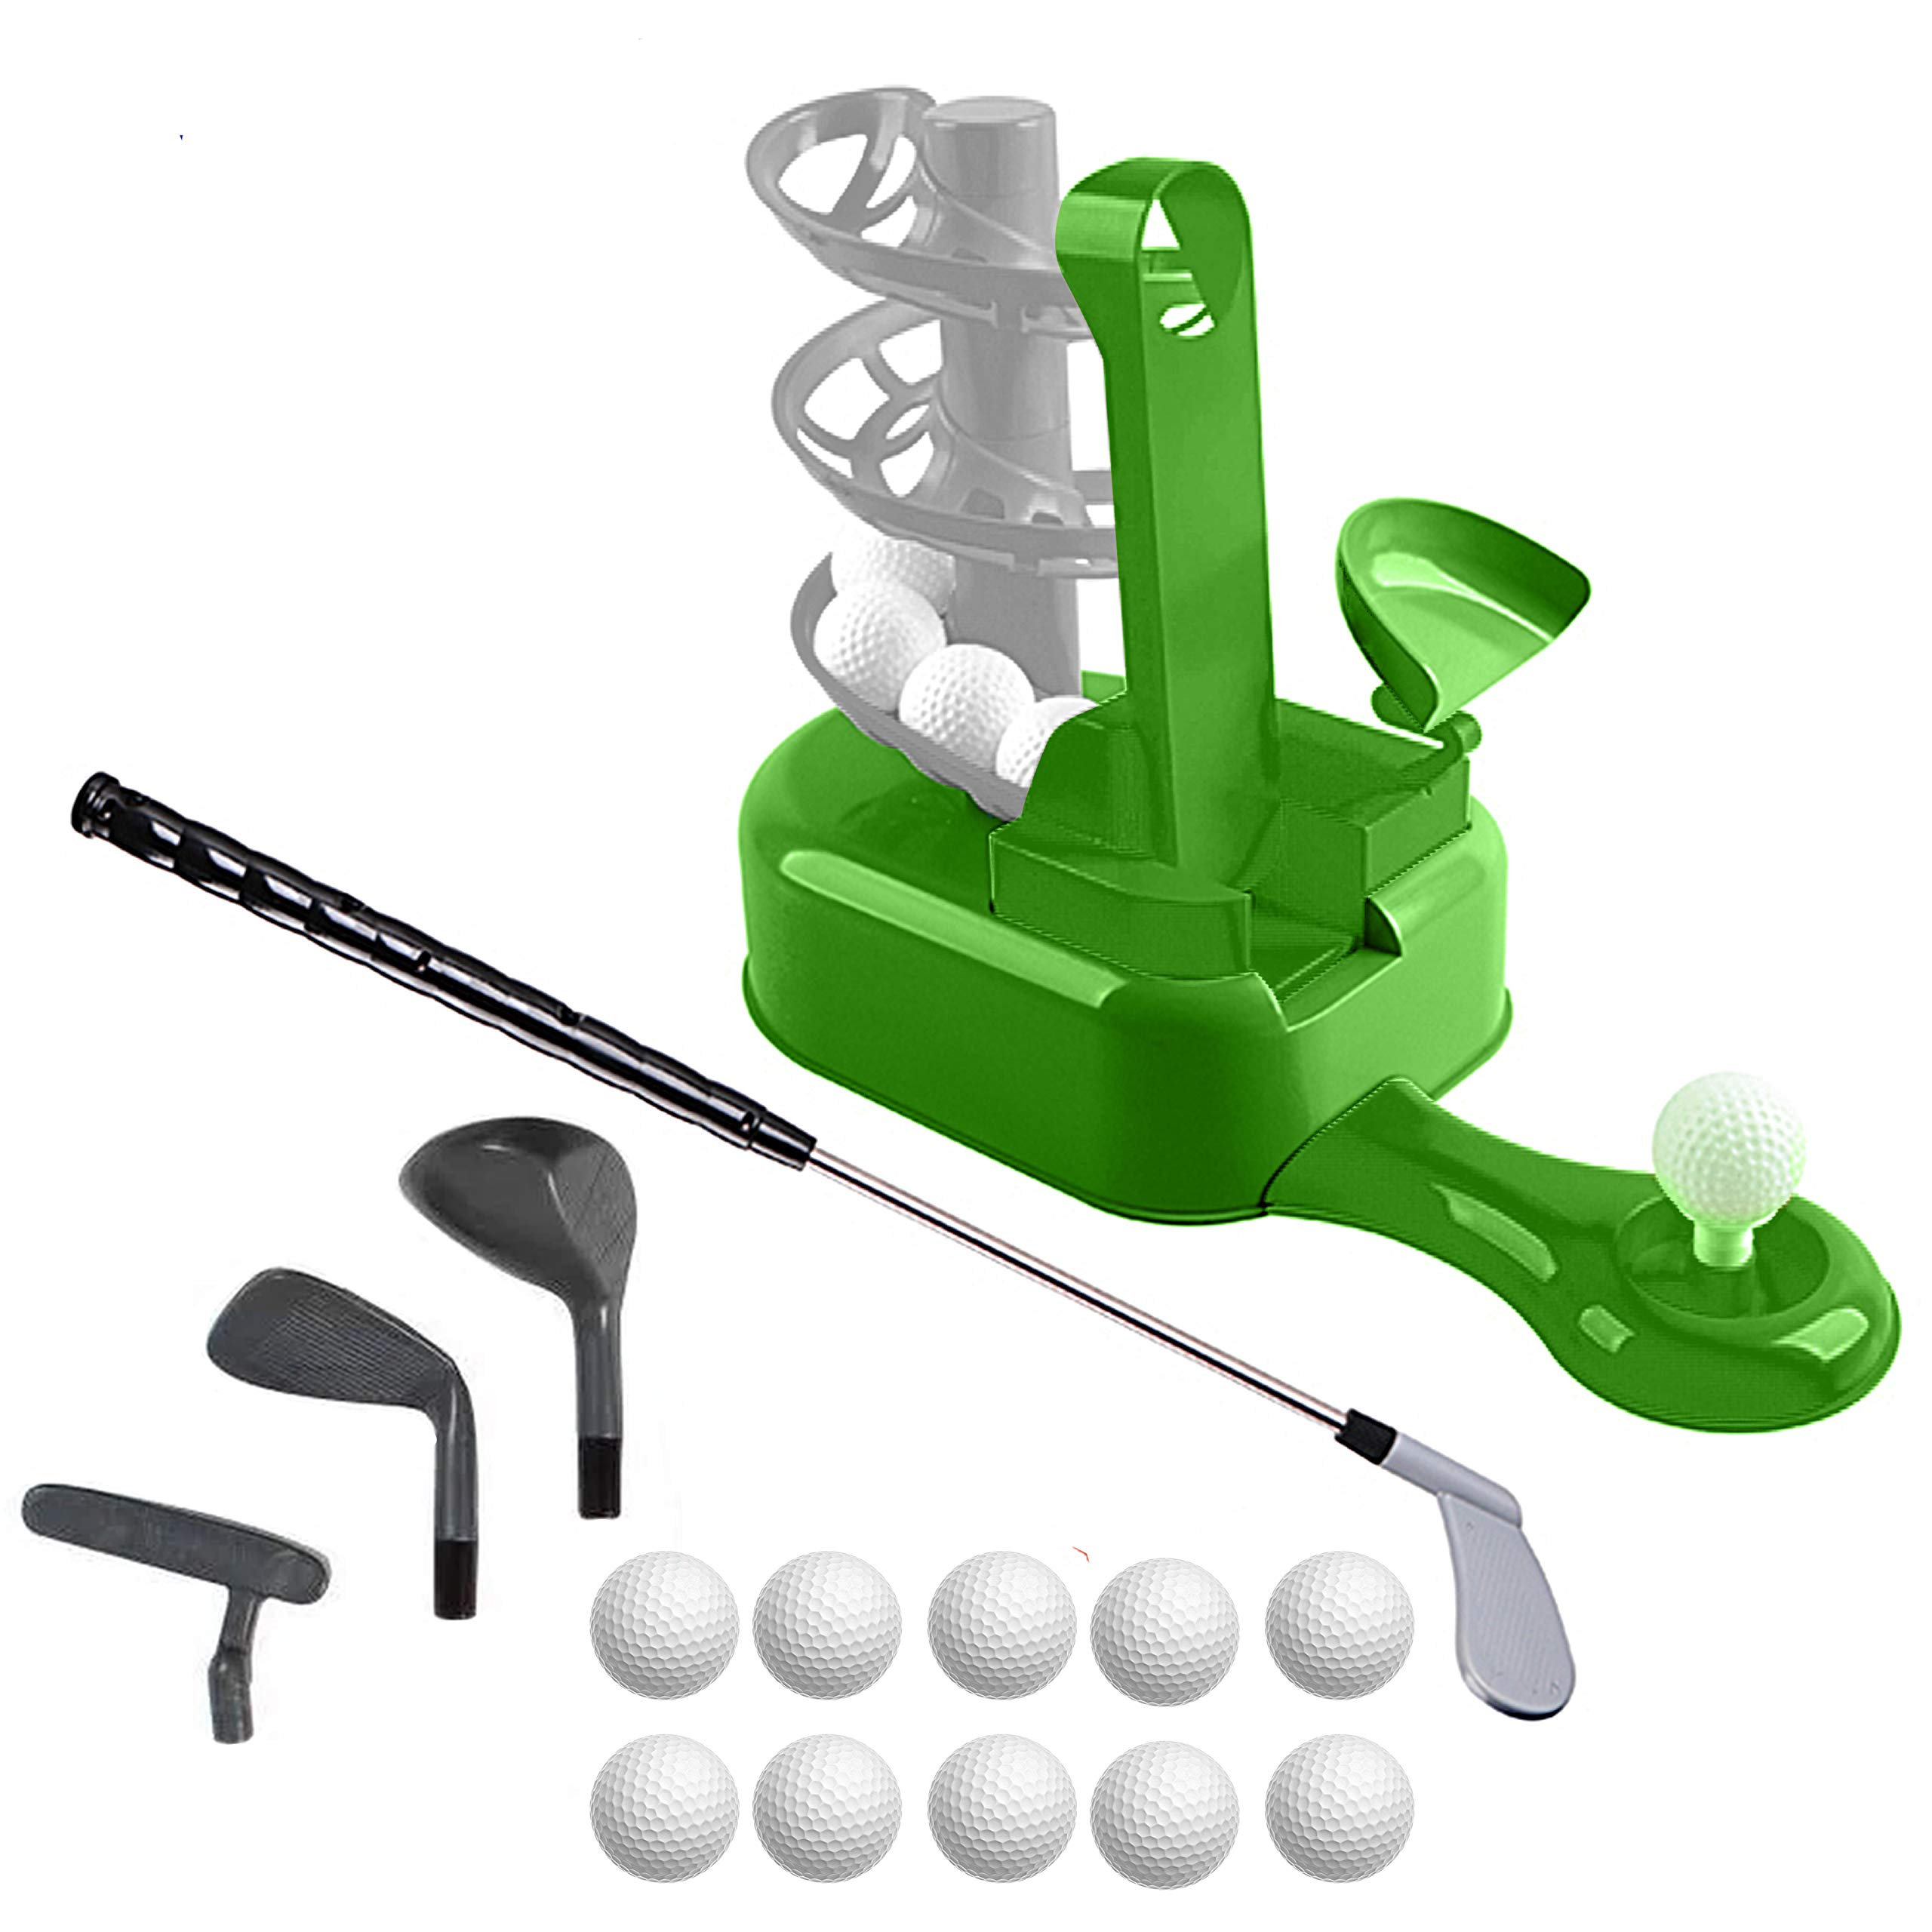 Sport Games Golf Toy Set, Kids Golf Clubs, Kids Golf Set, Toddler Golf Set, Kids Sports Toys, Toddler Sports Toys, Outdoor Exercise Toys for Kids, Boys, Girls, Includes Toy Golf Clubs and More